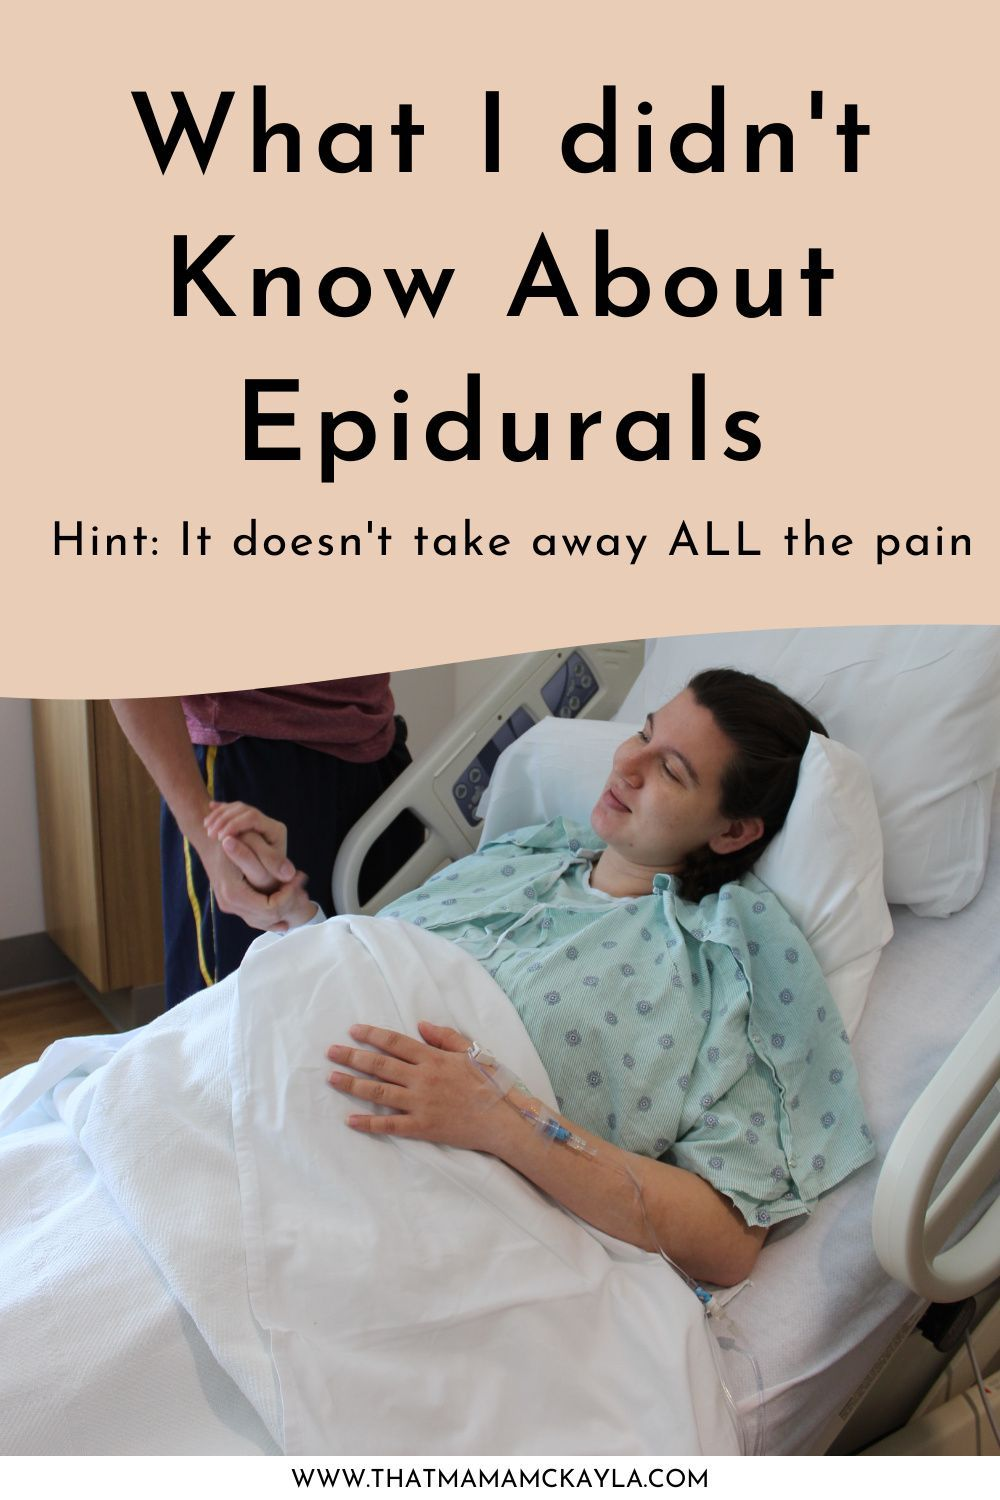 What I didn't know or expect when prepping for birth and getting an epidural in the hospital. Discover how the birthing experience can be different for everyone even when standardized medicine is used. #firsttimemom #birthstory #birth